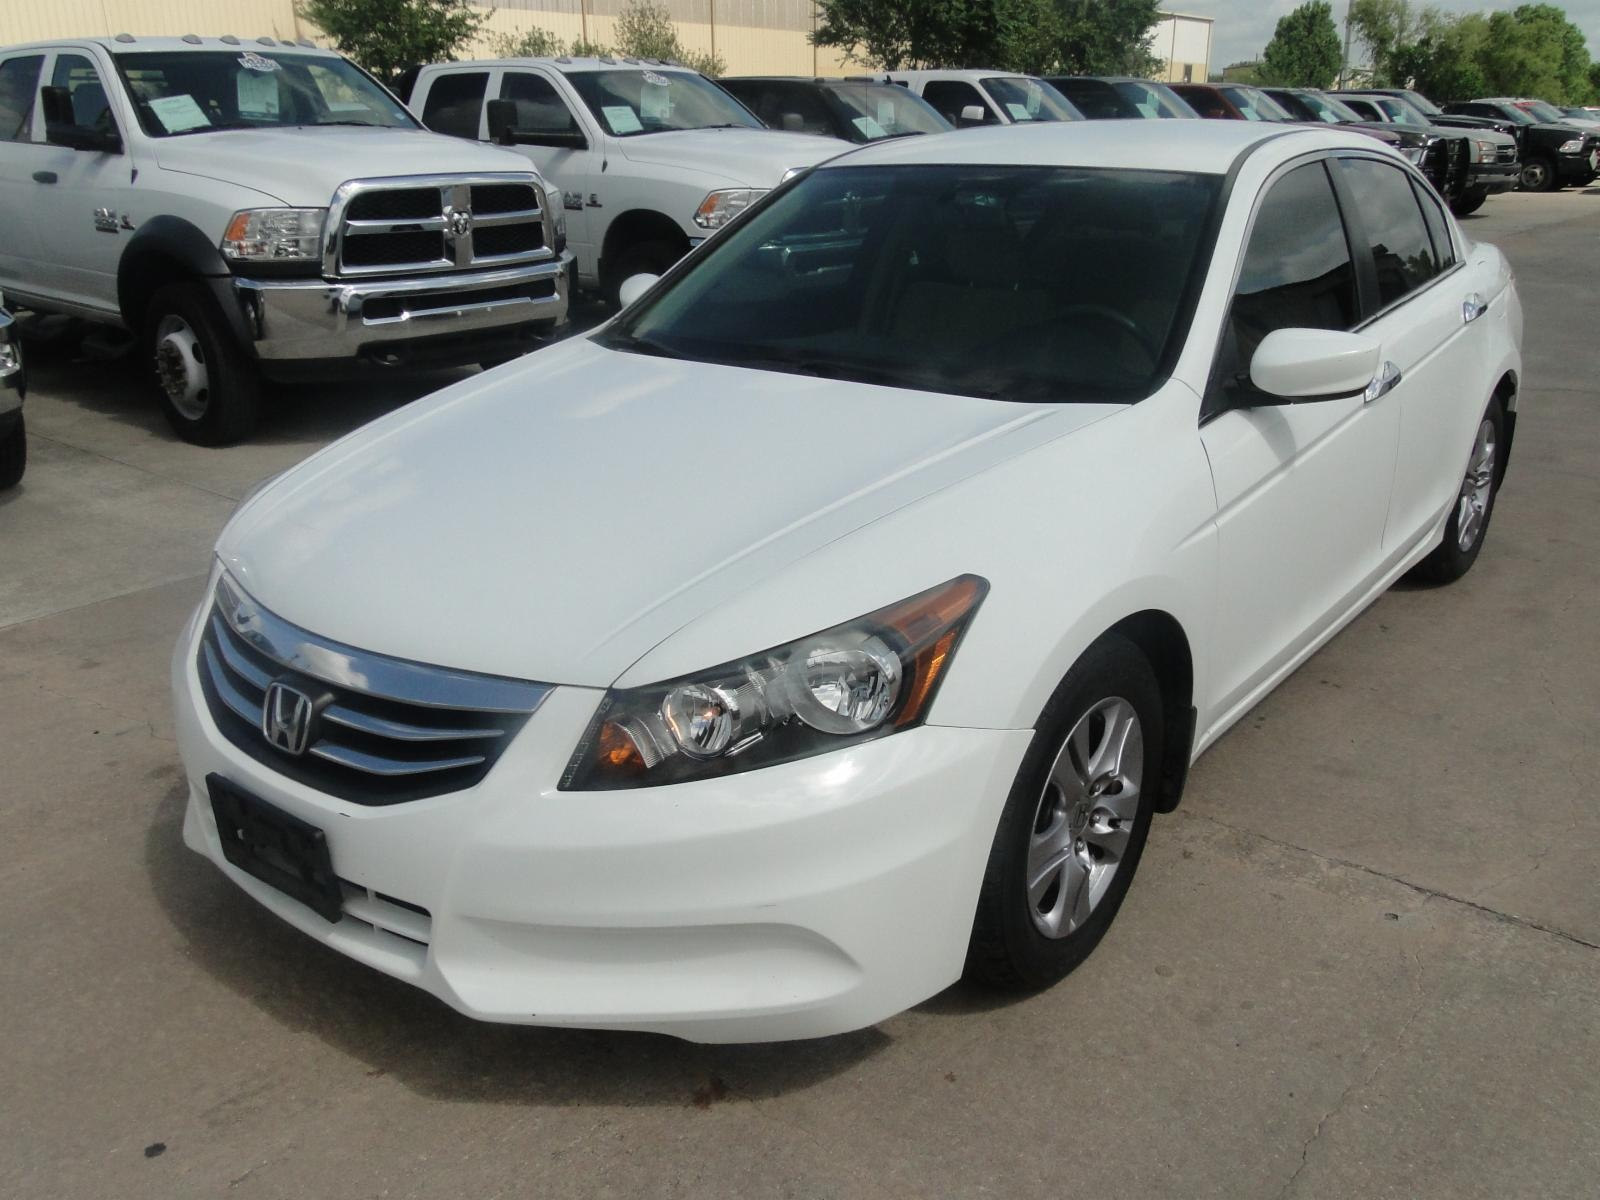 honda accord questions what 39 s the most reliable car on the market i 39 m leaning toward honda. Black Bedroom Furniture Sets. Home Design Ideas